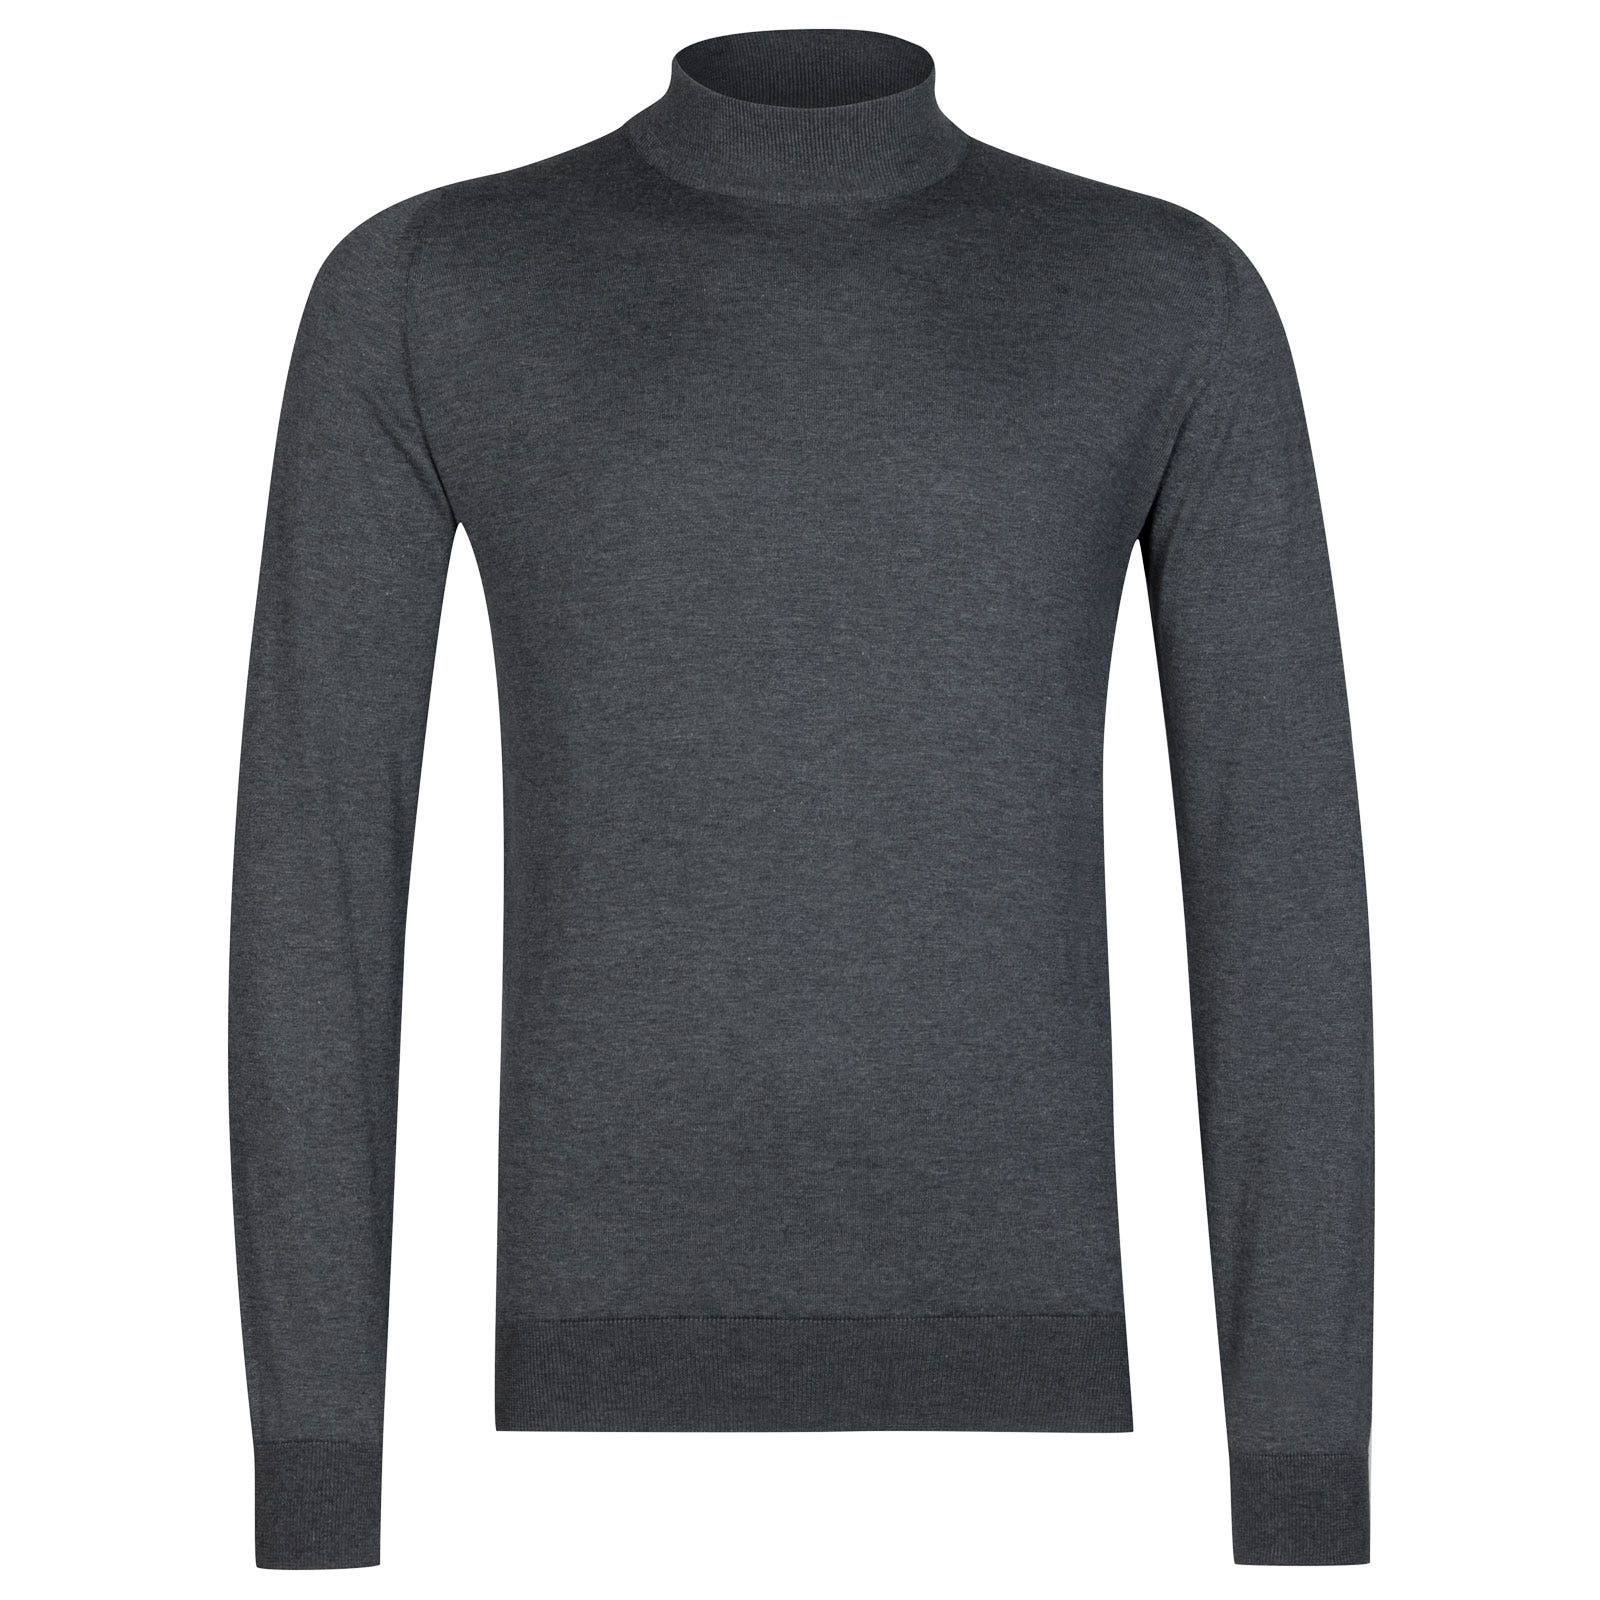 John Smedley Bradgate Sea Island Cotton Pullover in Charcoal-M